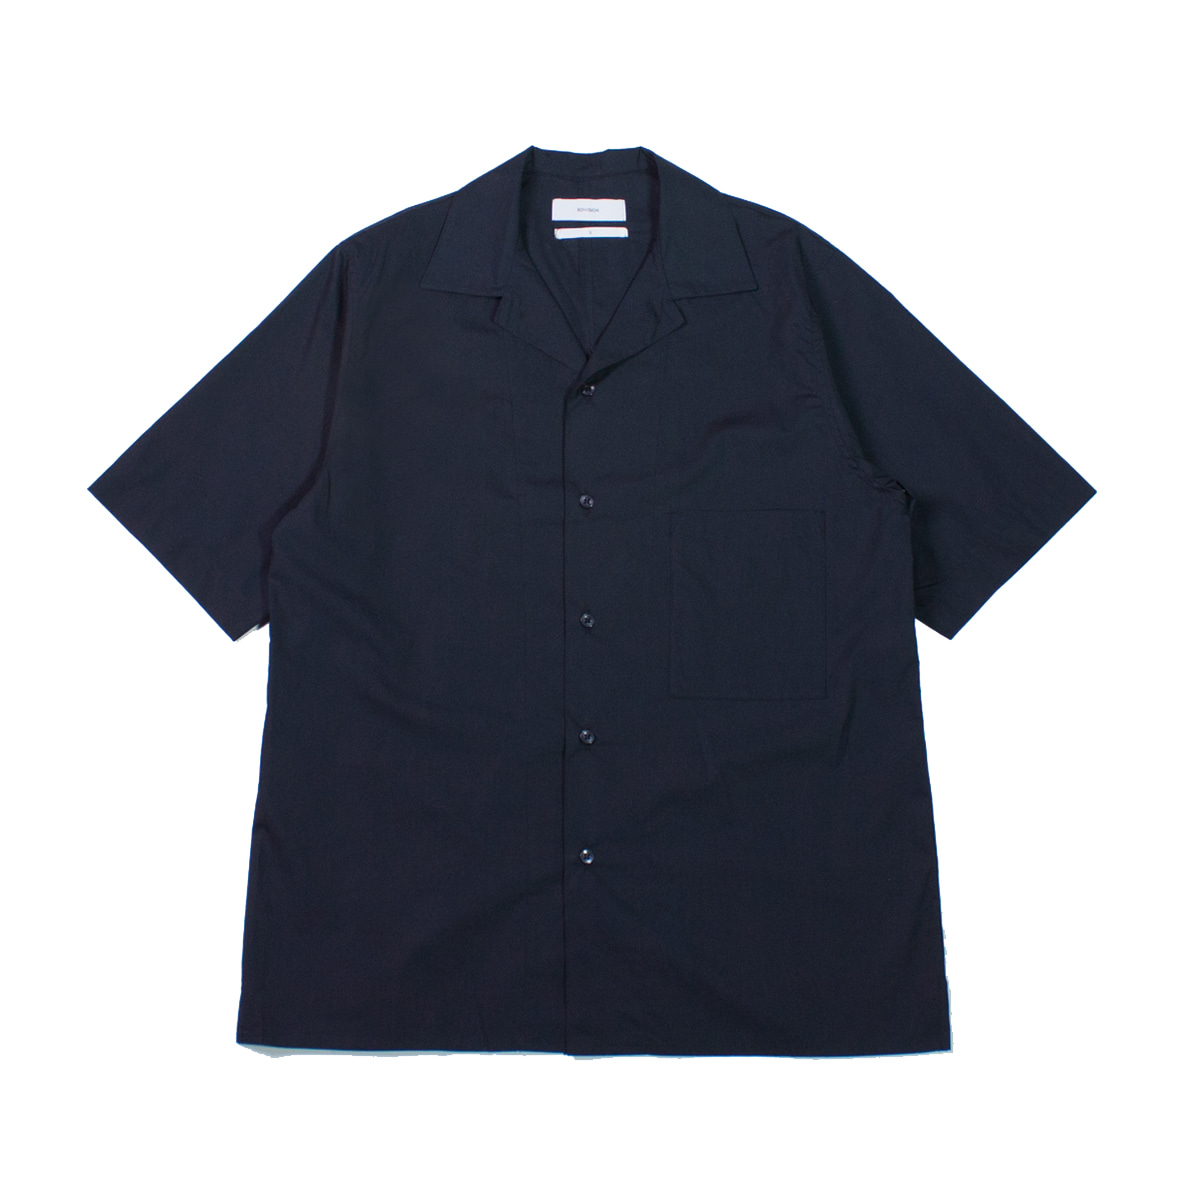 [8DIVISION] OPEN COLLAR SHIRT 'NAVY'